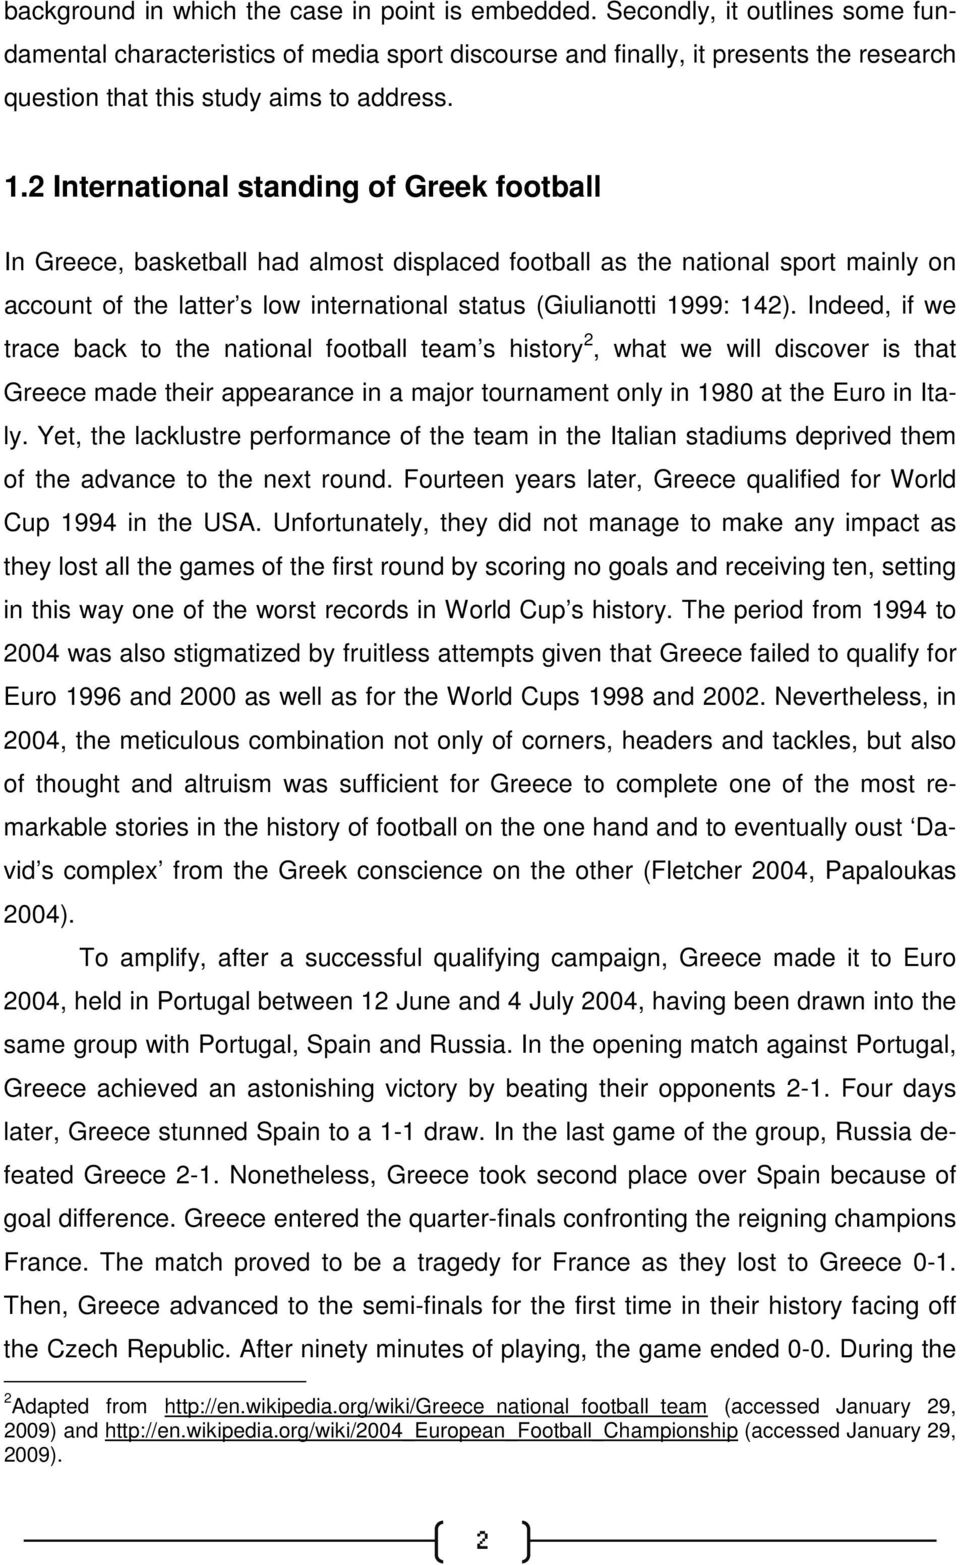 2 International standing of Greek football In Greece, basketball had almost displaced football as the national sport mainly on account of the latter s low international status (Giulianotti 1999: 142).